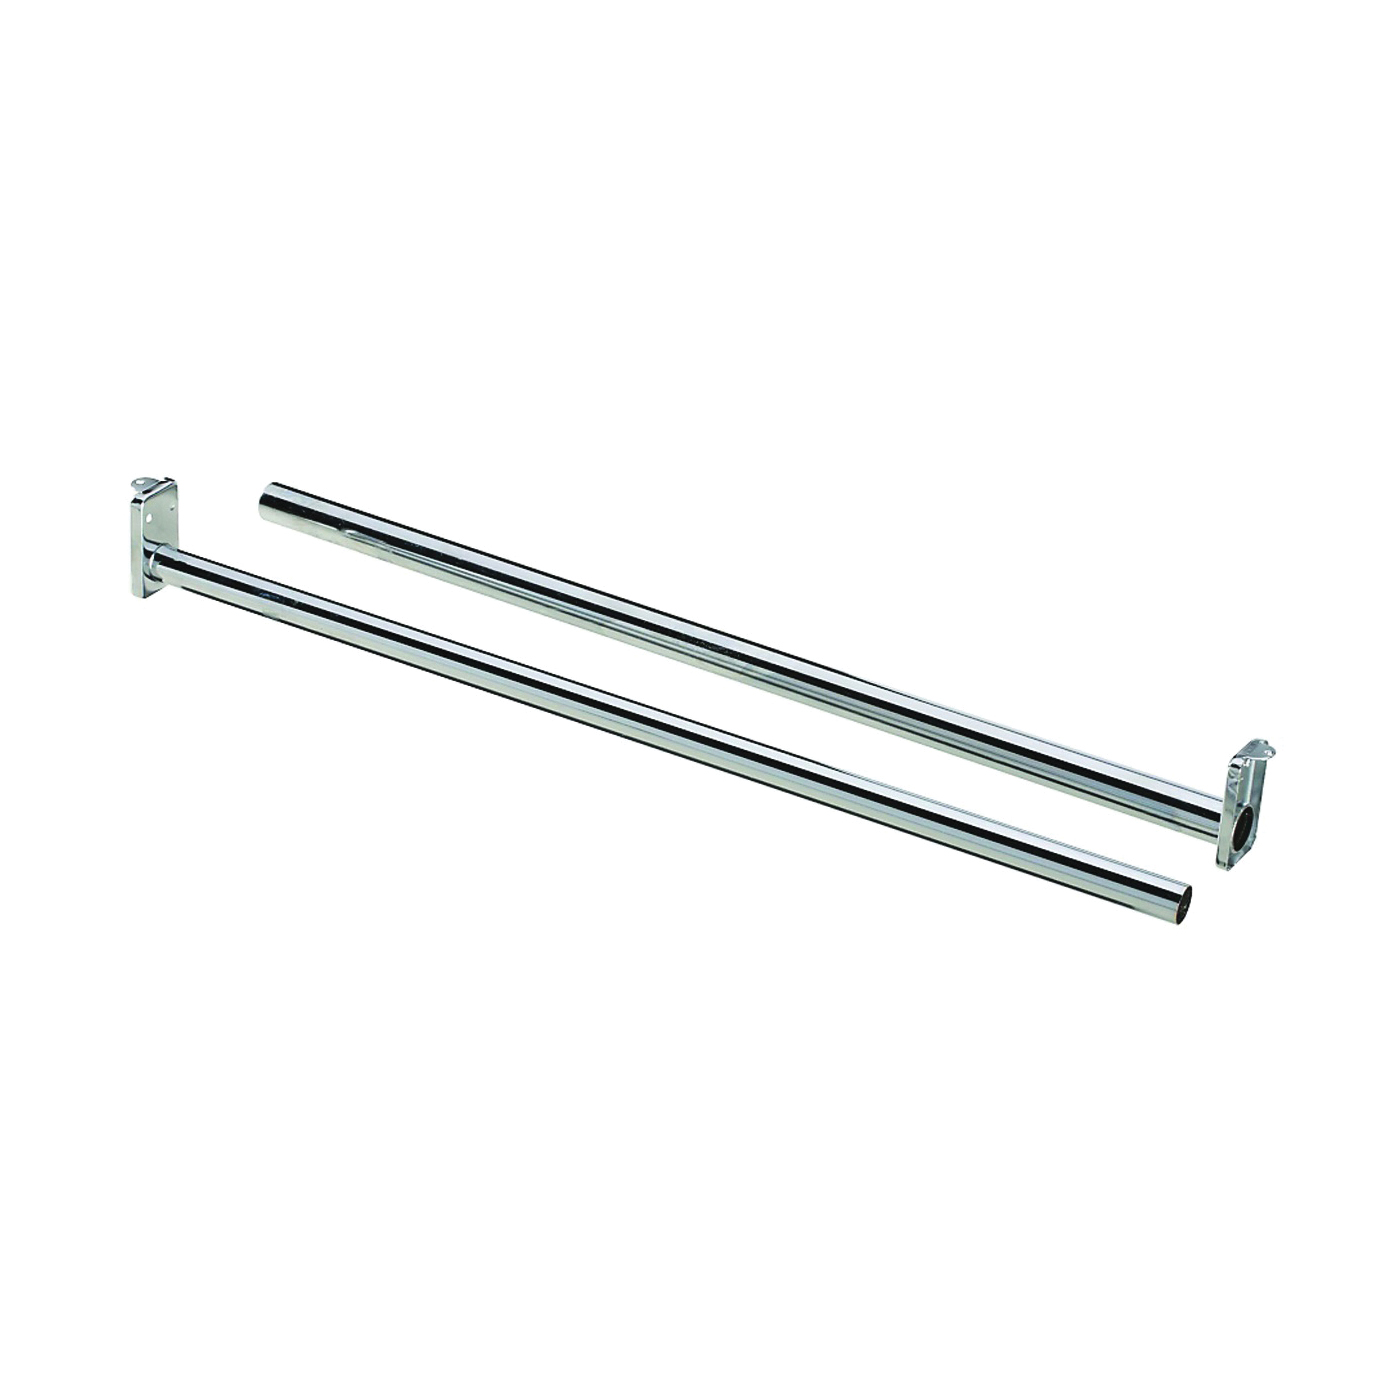 Picture of National Hardware DPV209 Series N338-335 Closet Rod, 72 to 120 in L, Steel, Bright